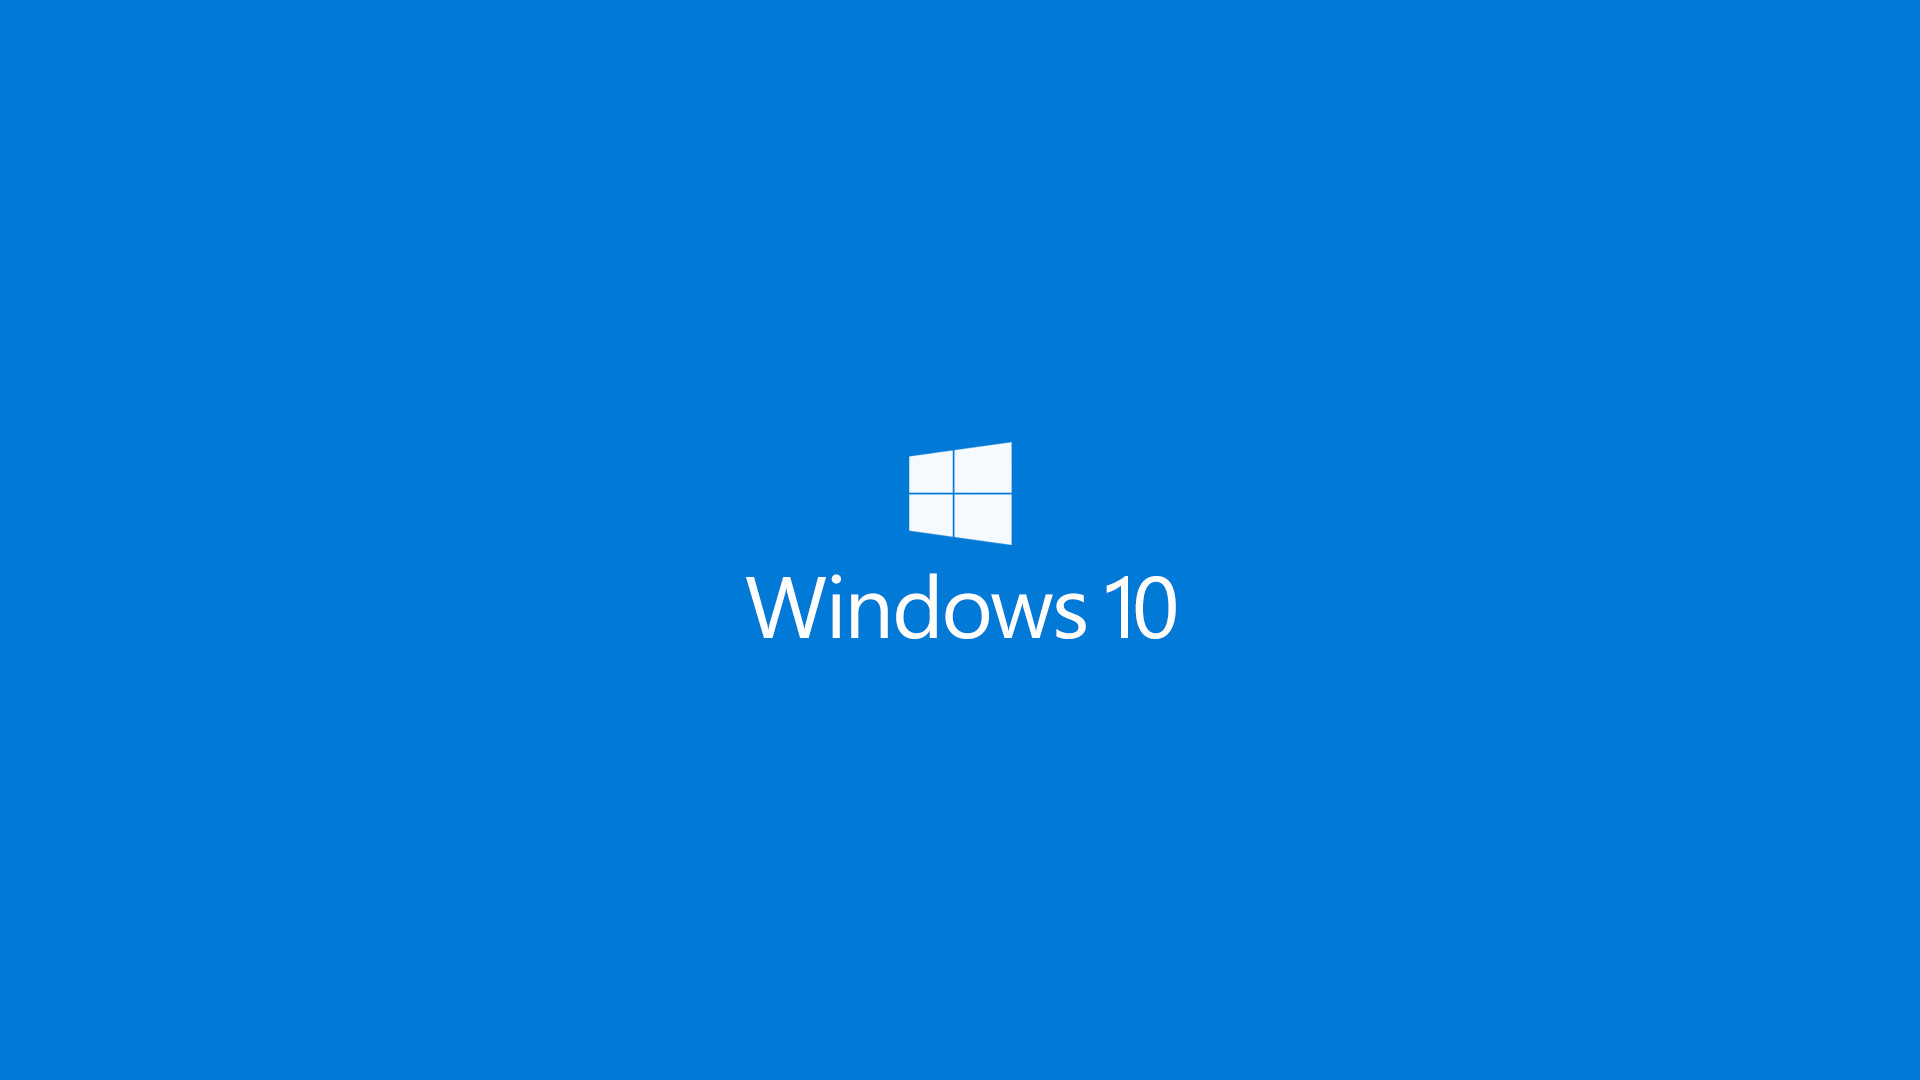 1920x1080 Windows 10 change desktop clipart sizeClipartFest. HD Desktop Wallpapers  Windows